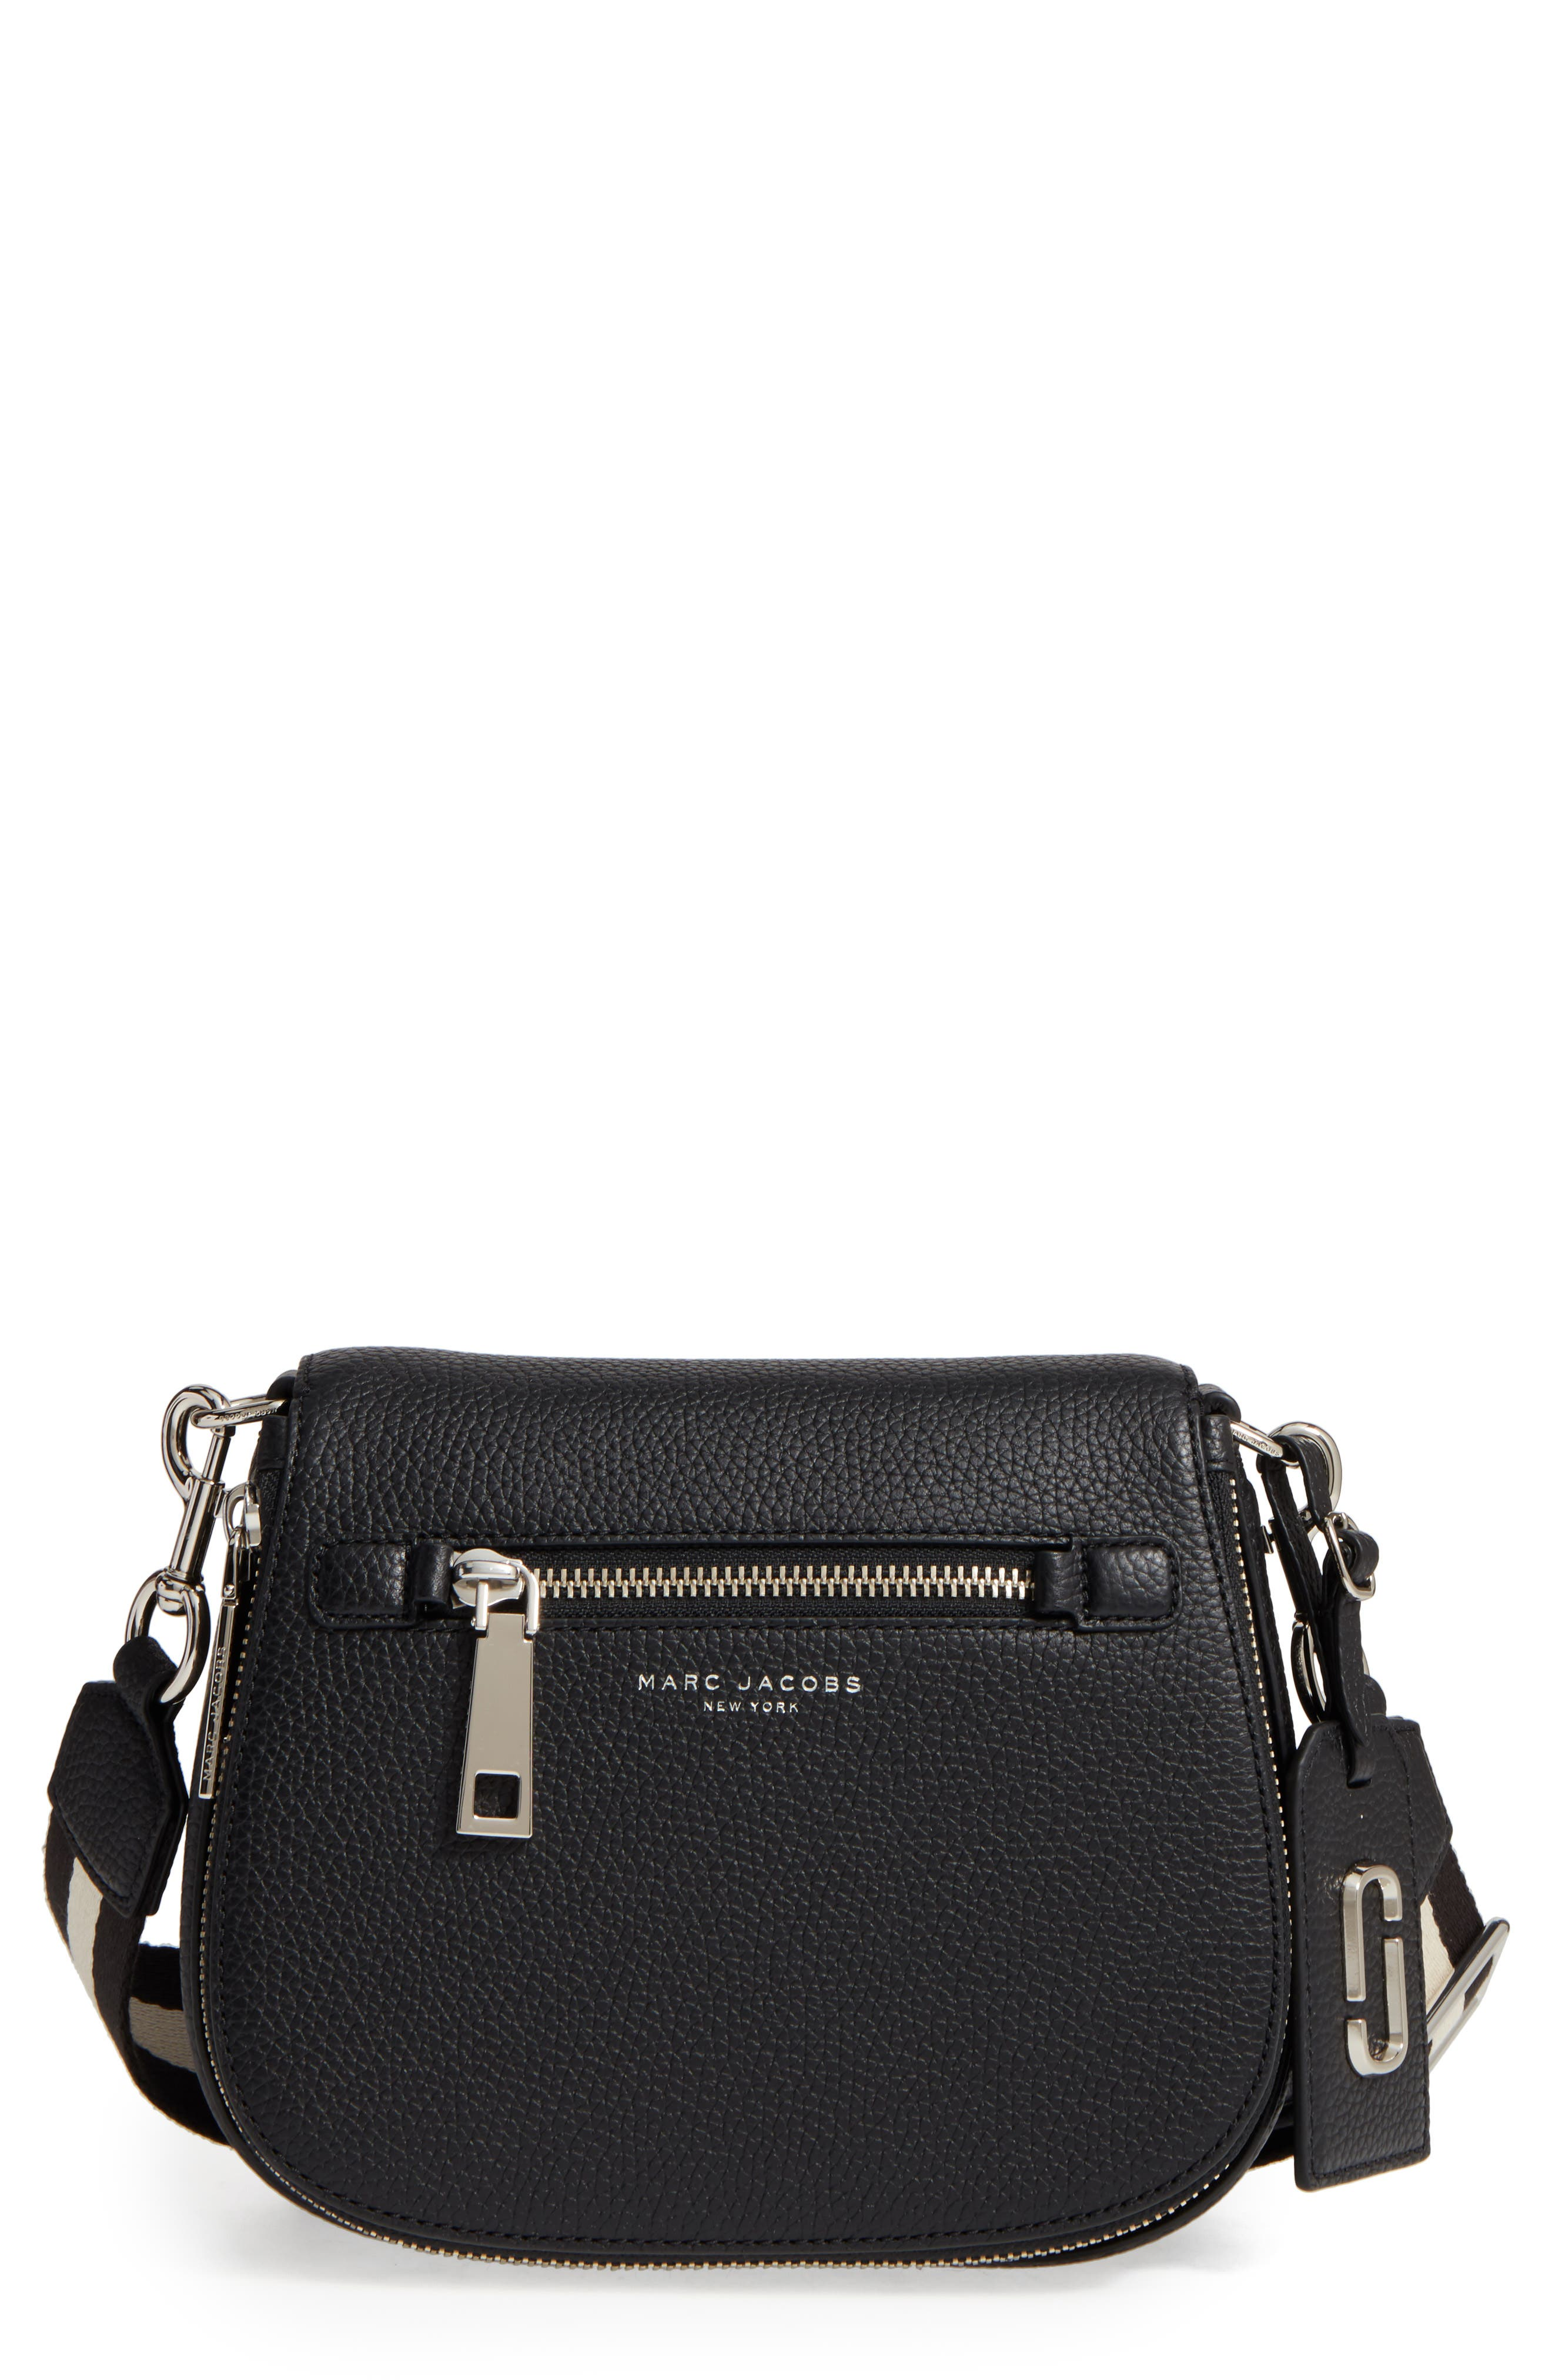 Small Nomad Gotham Leather Crossbody Bag,                             Main thumbnail 1, color,                             001